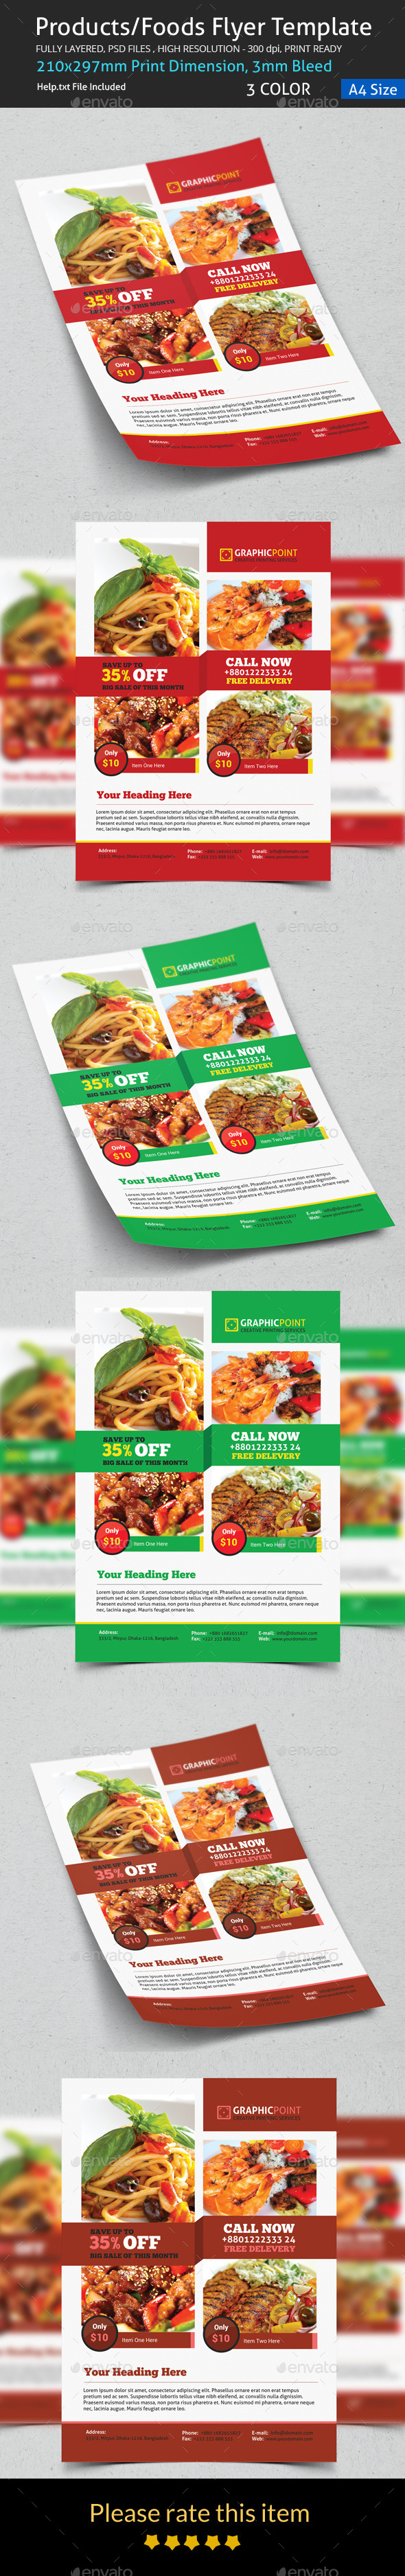 GraphicRiver Products Foods Flyer Template 8877034